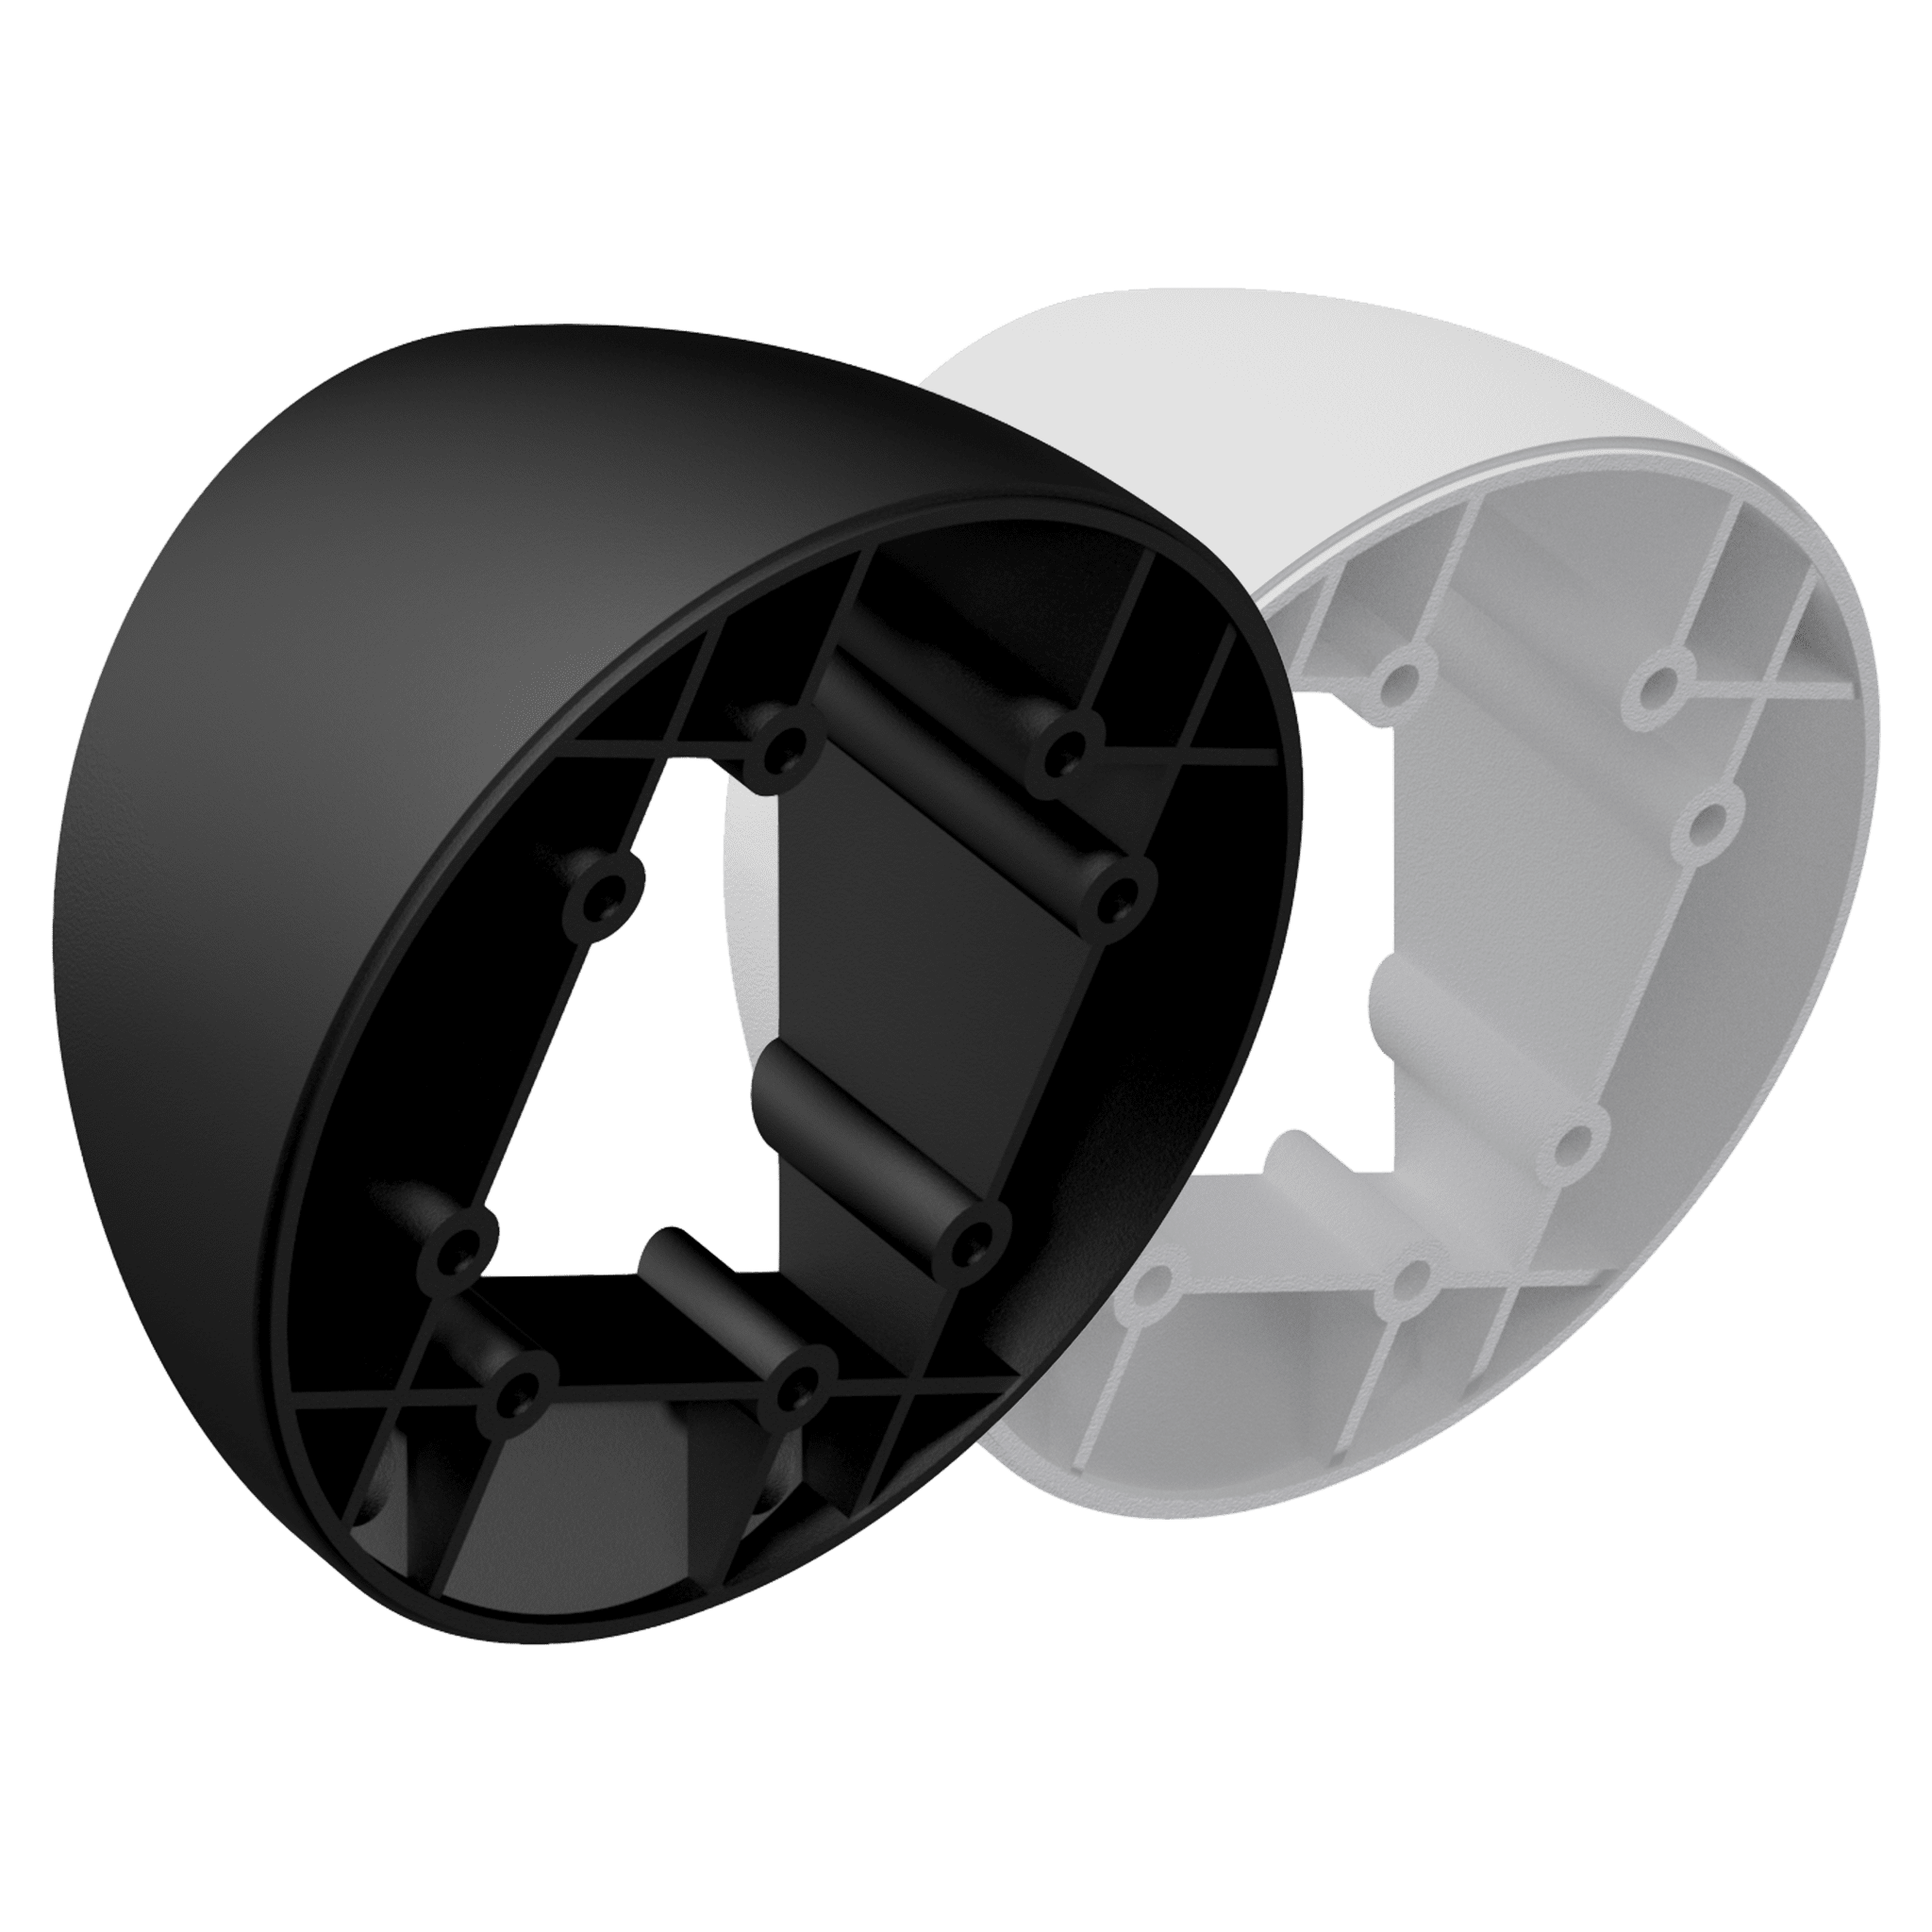 WMA40 - Extension mount with 30° incline angle for ATEO4